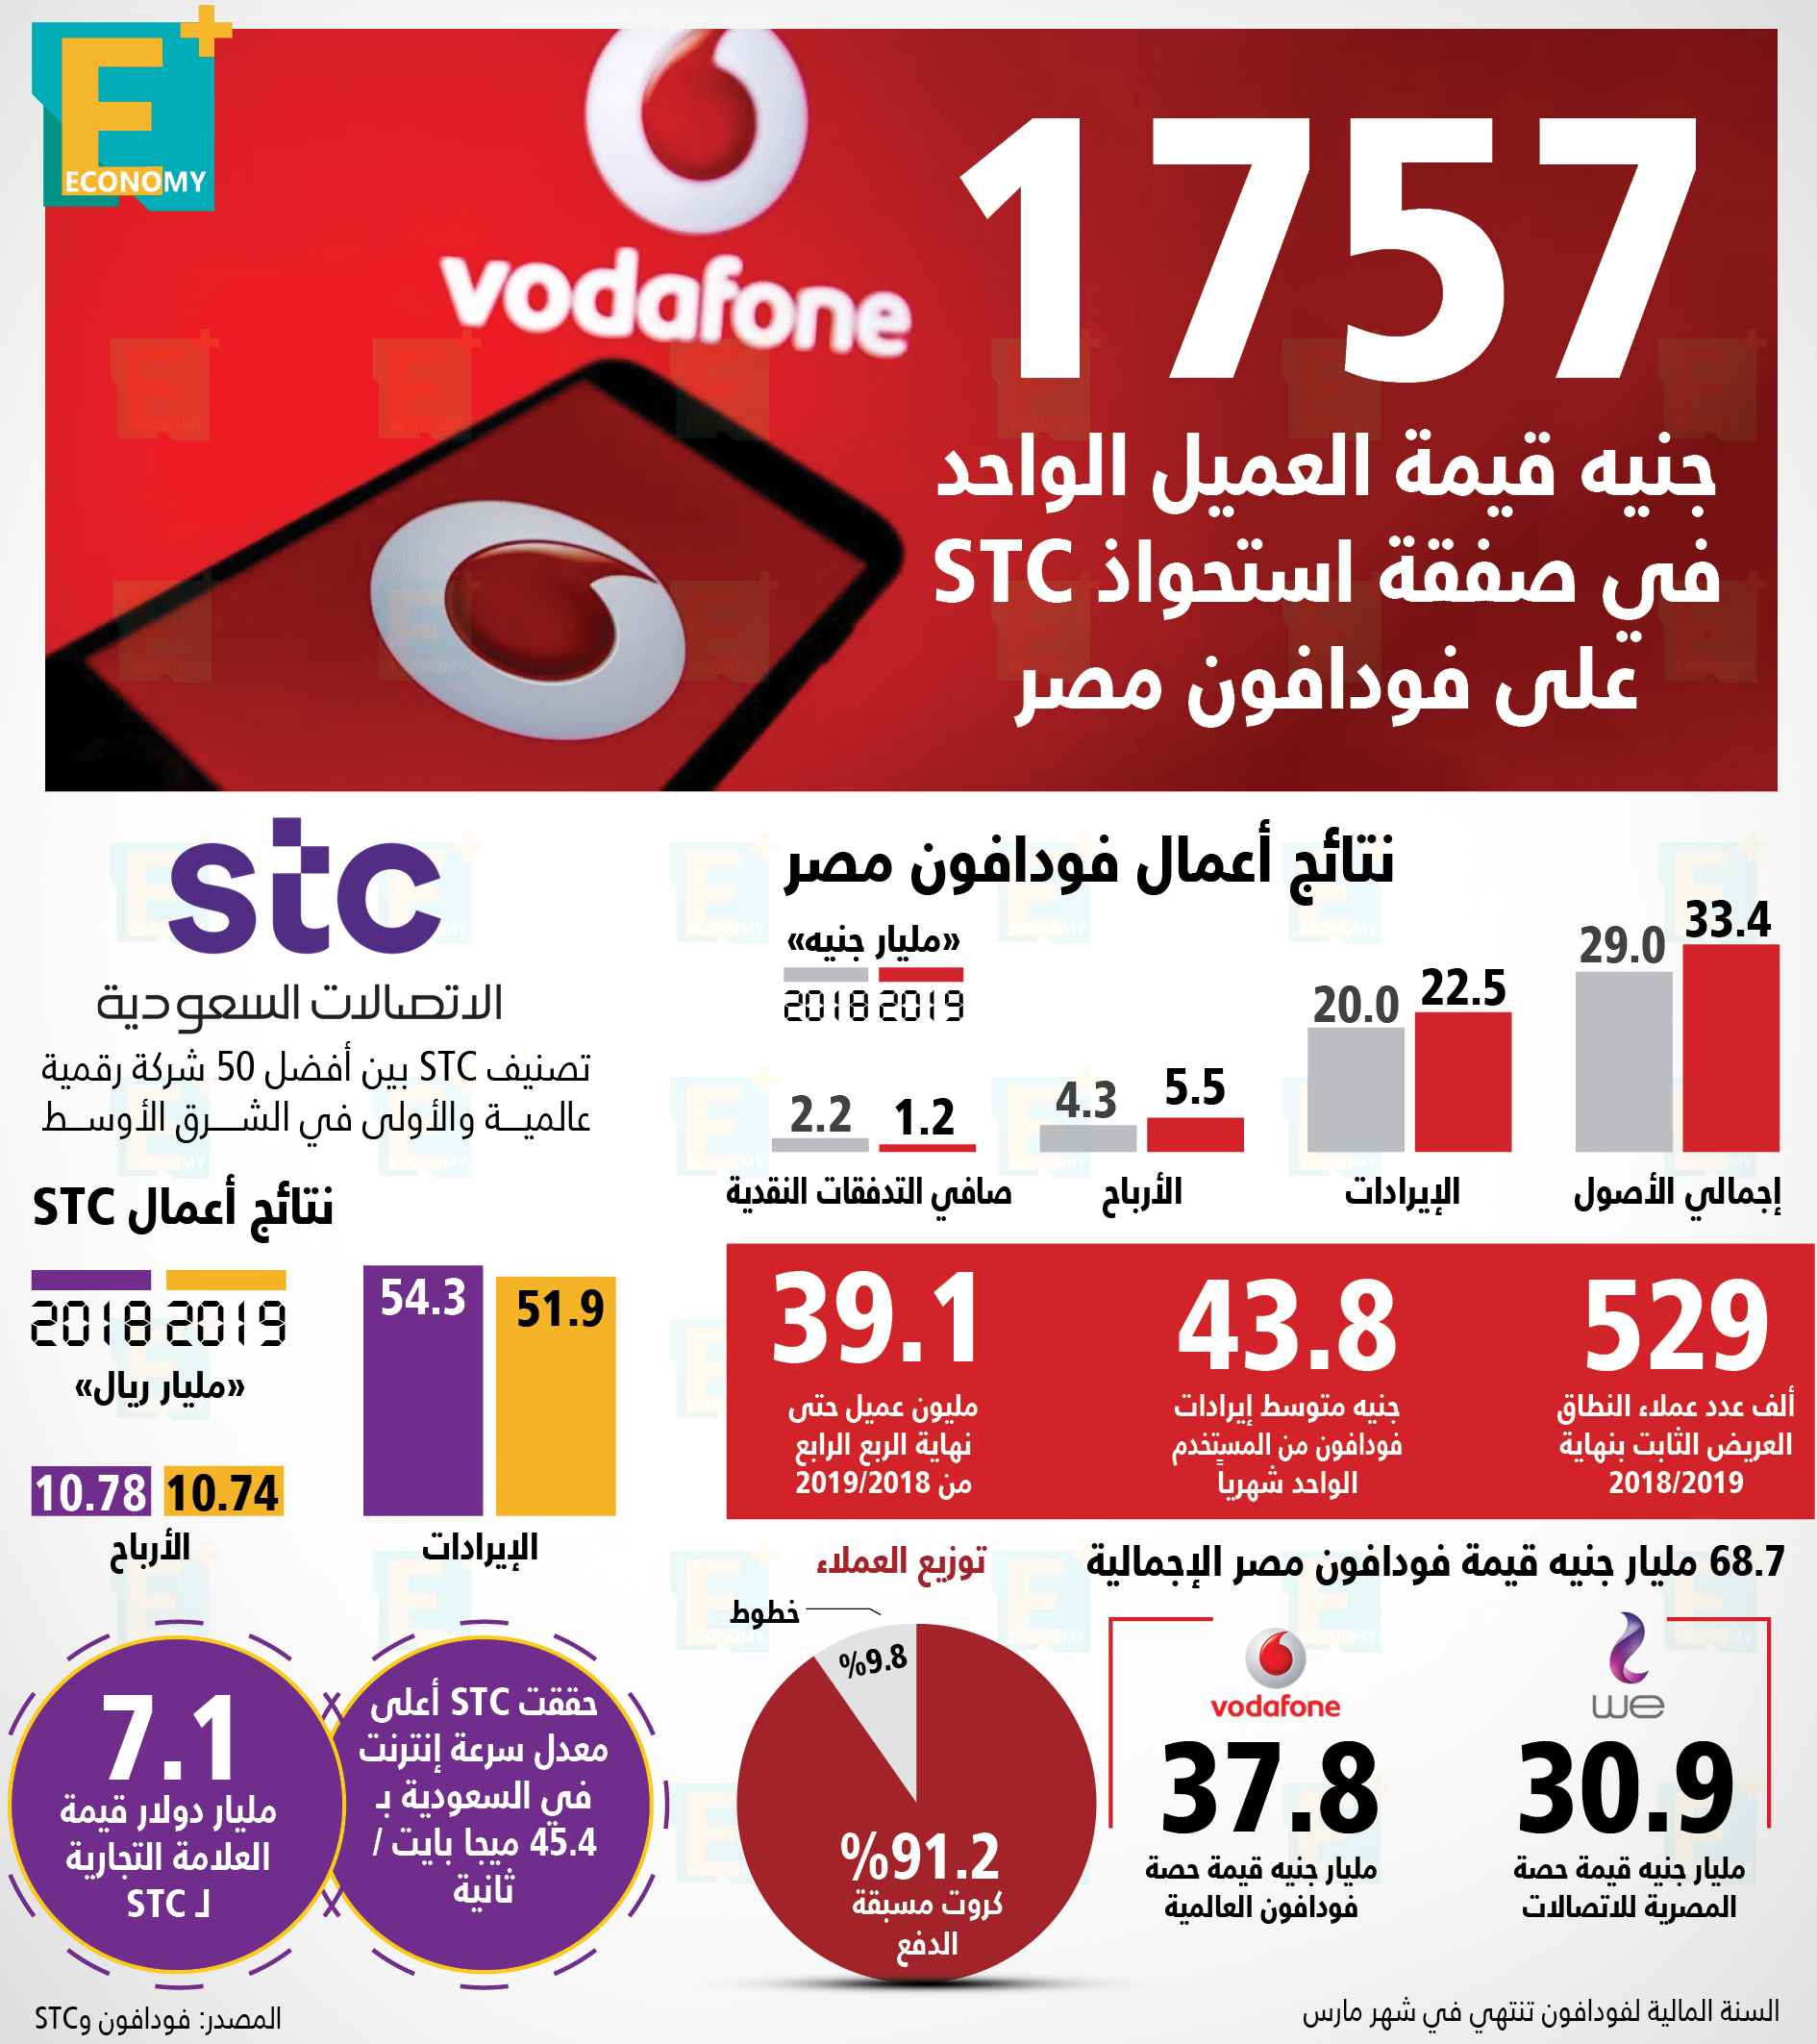 757 Egyptian pounds per customer in a STC acquisition of Vodafone Egypt